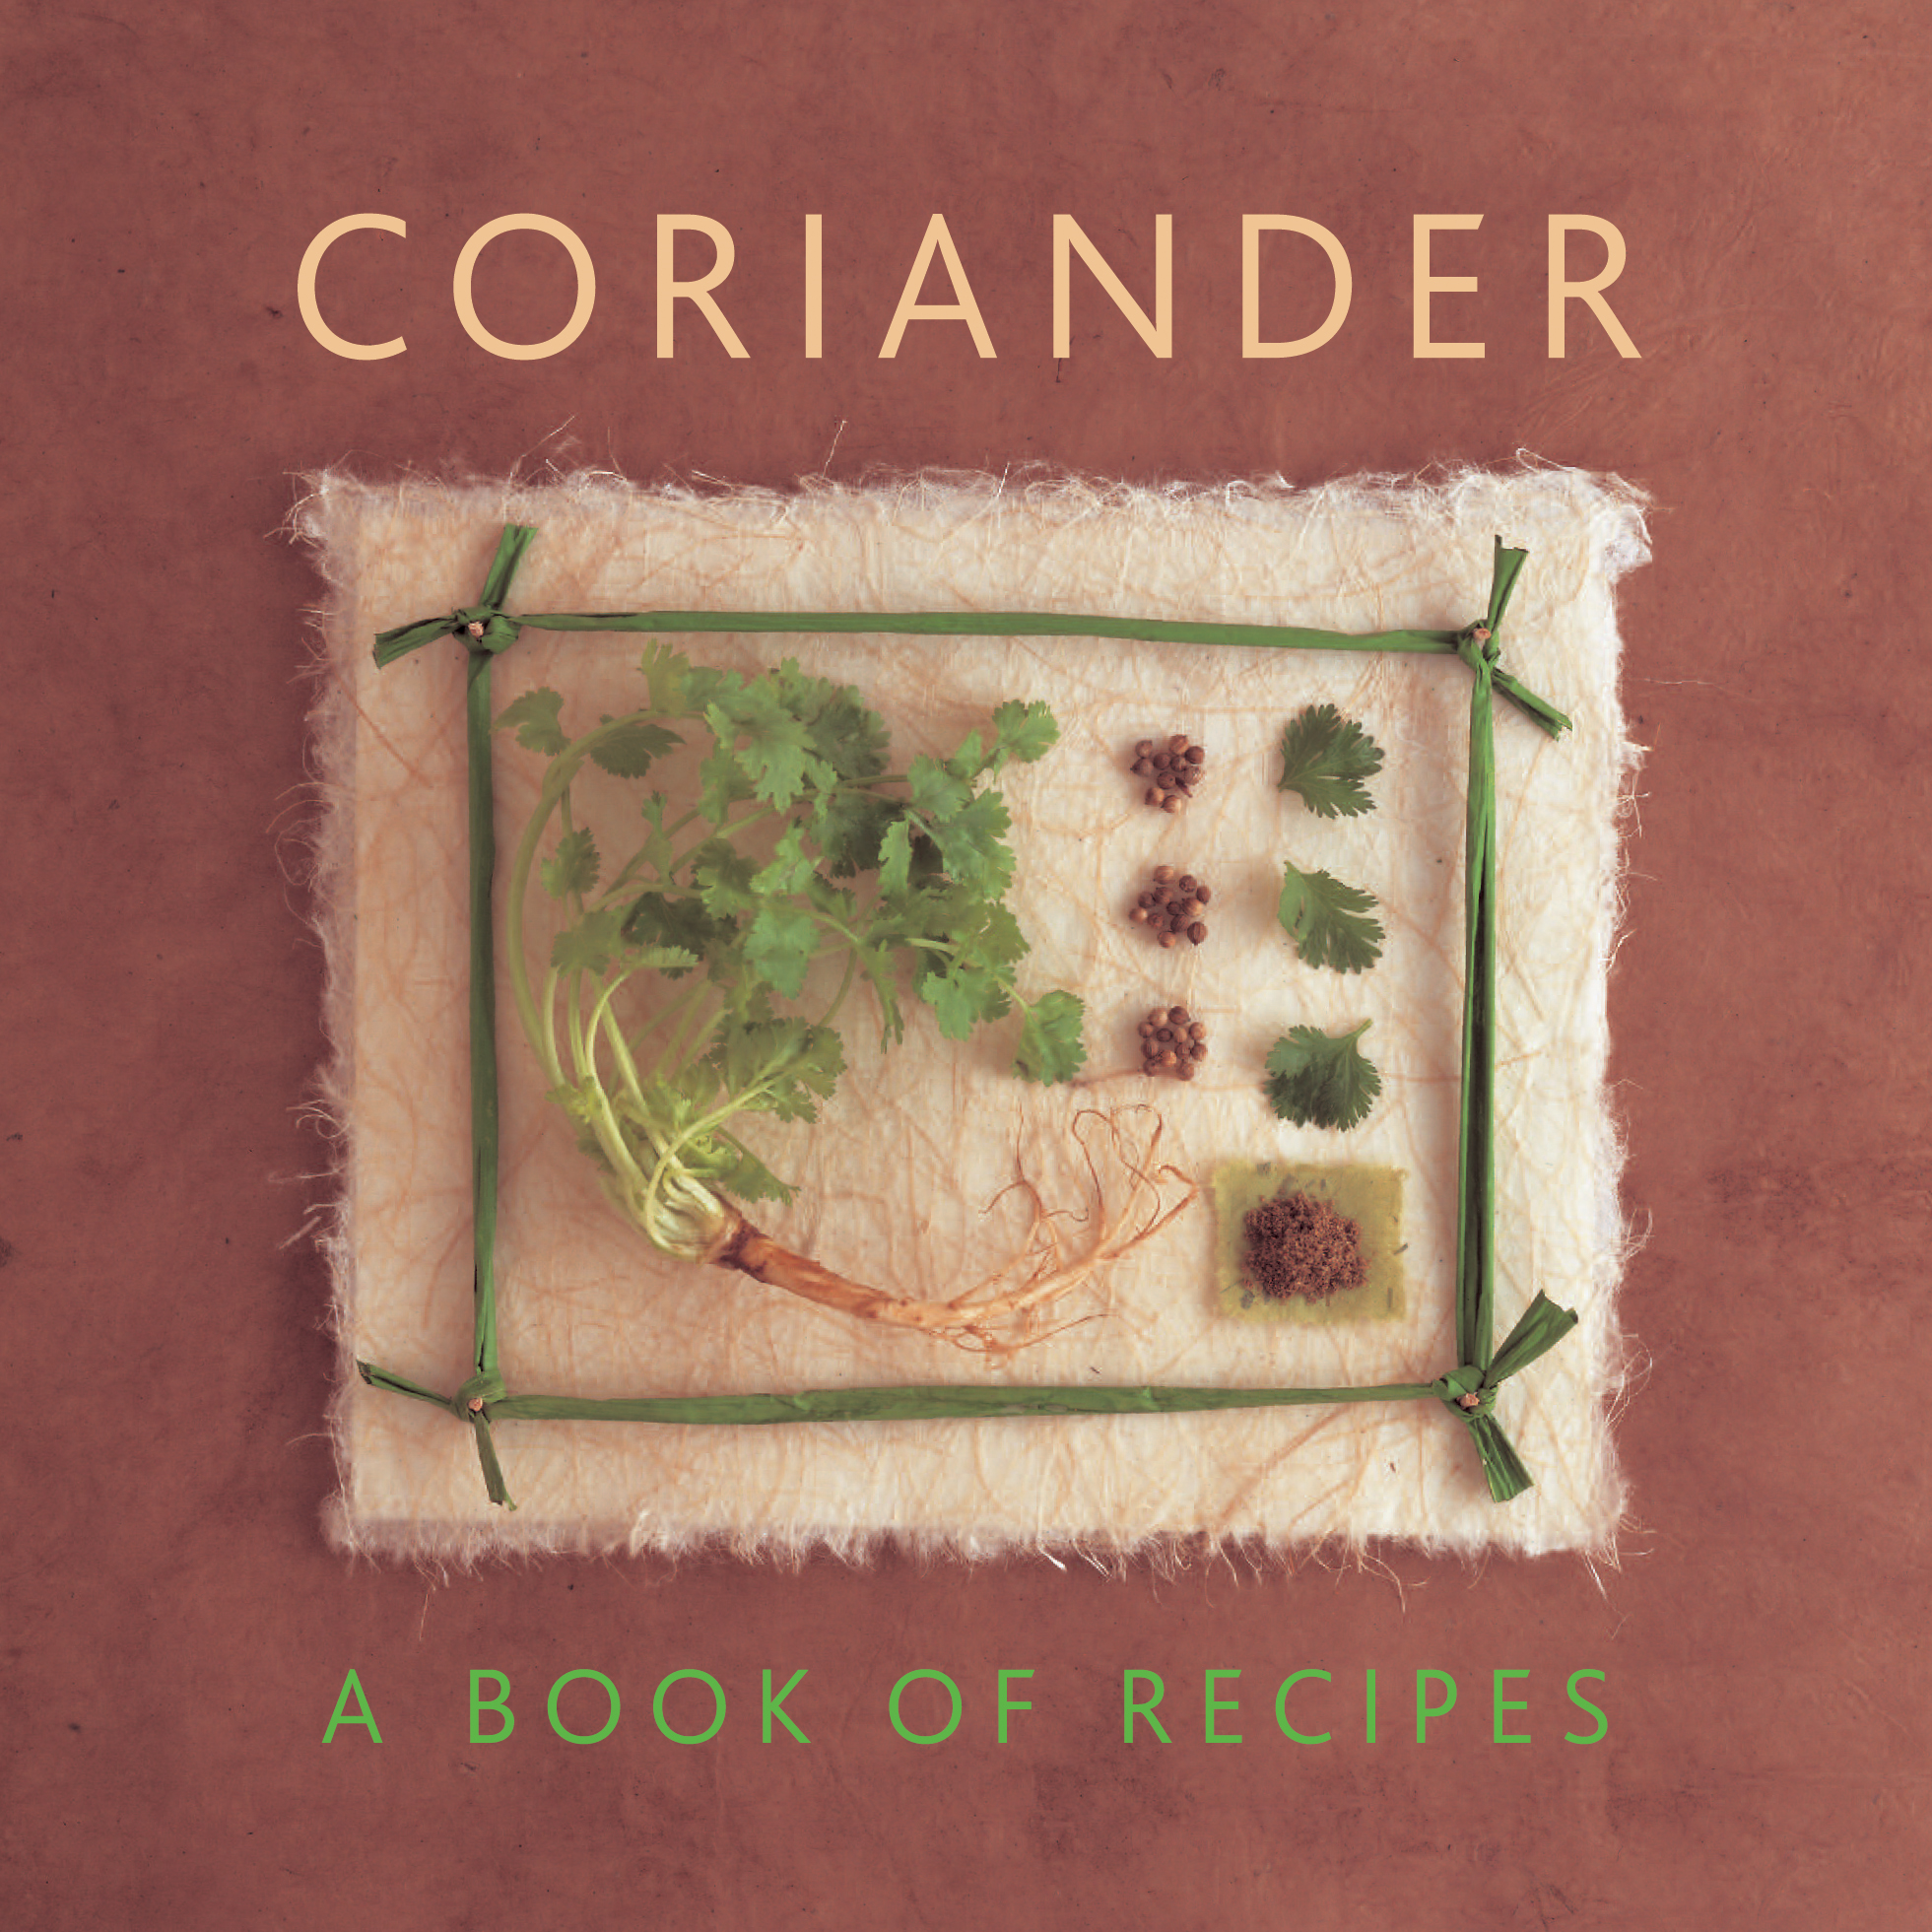 Coriander A Book of Recipes